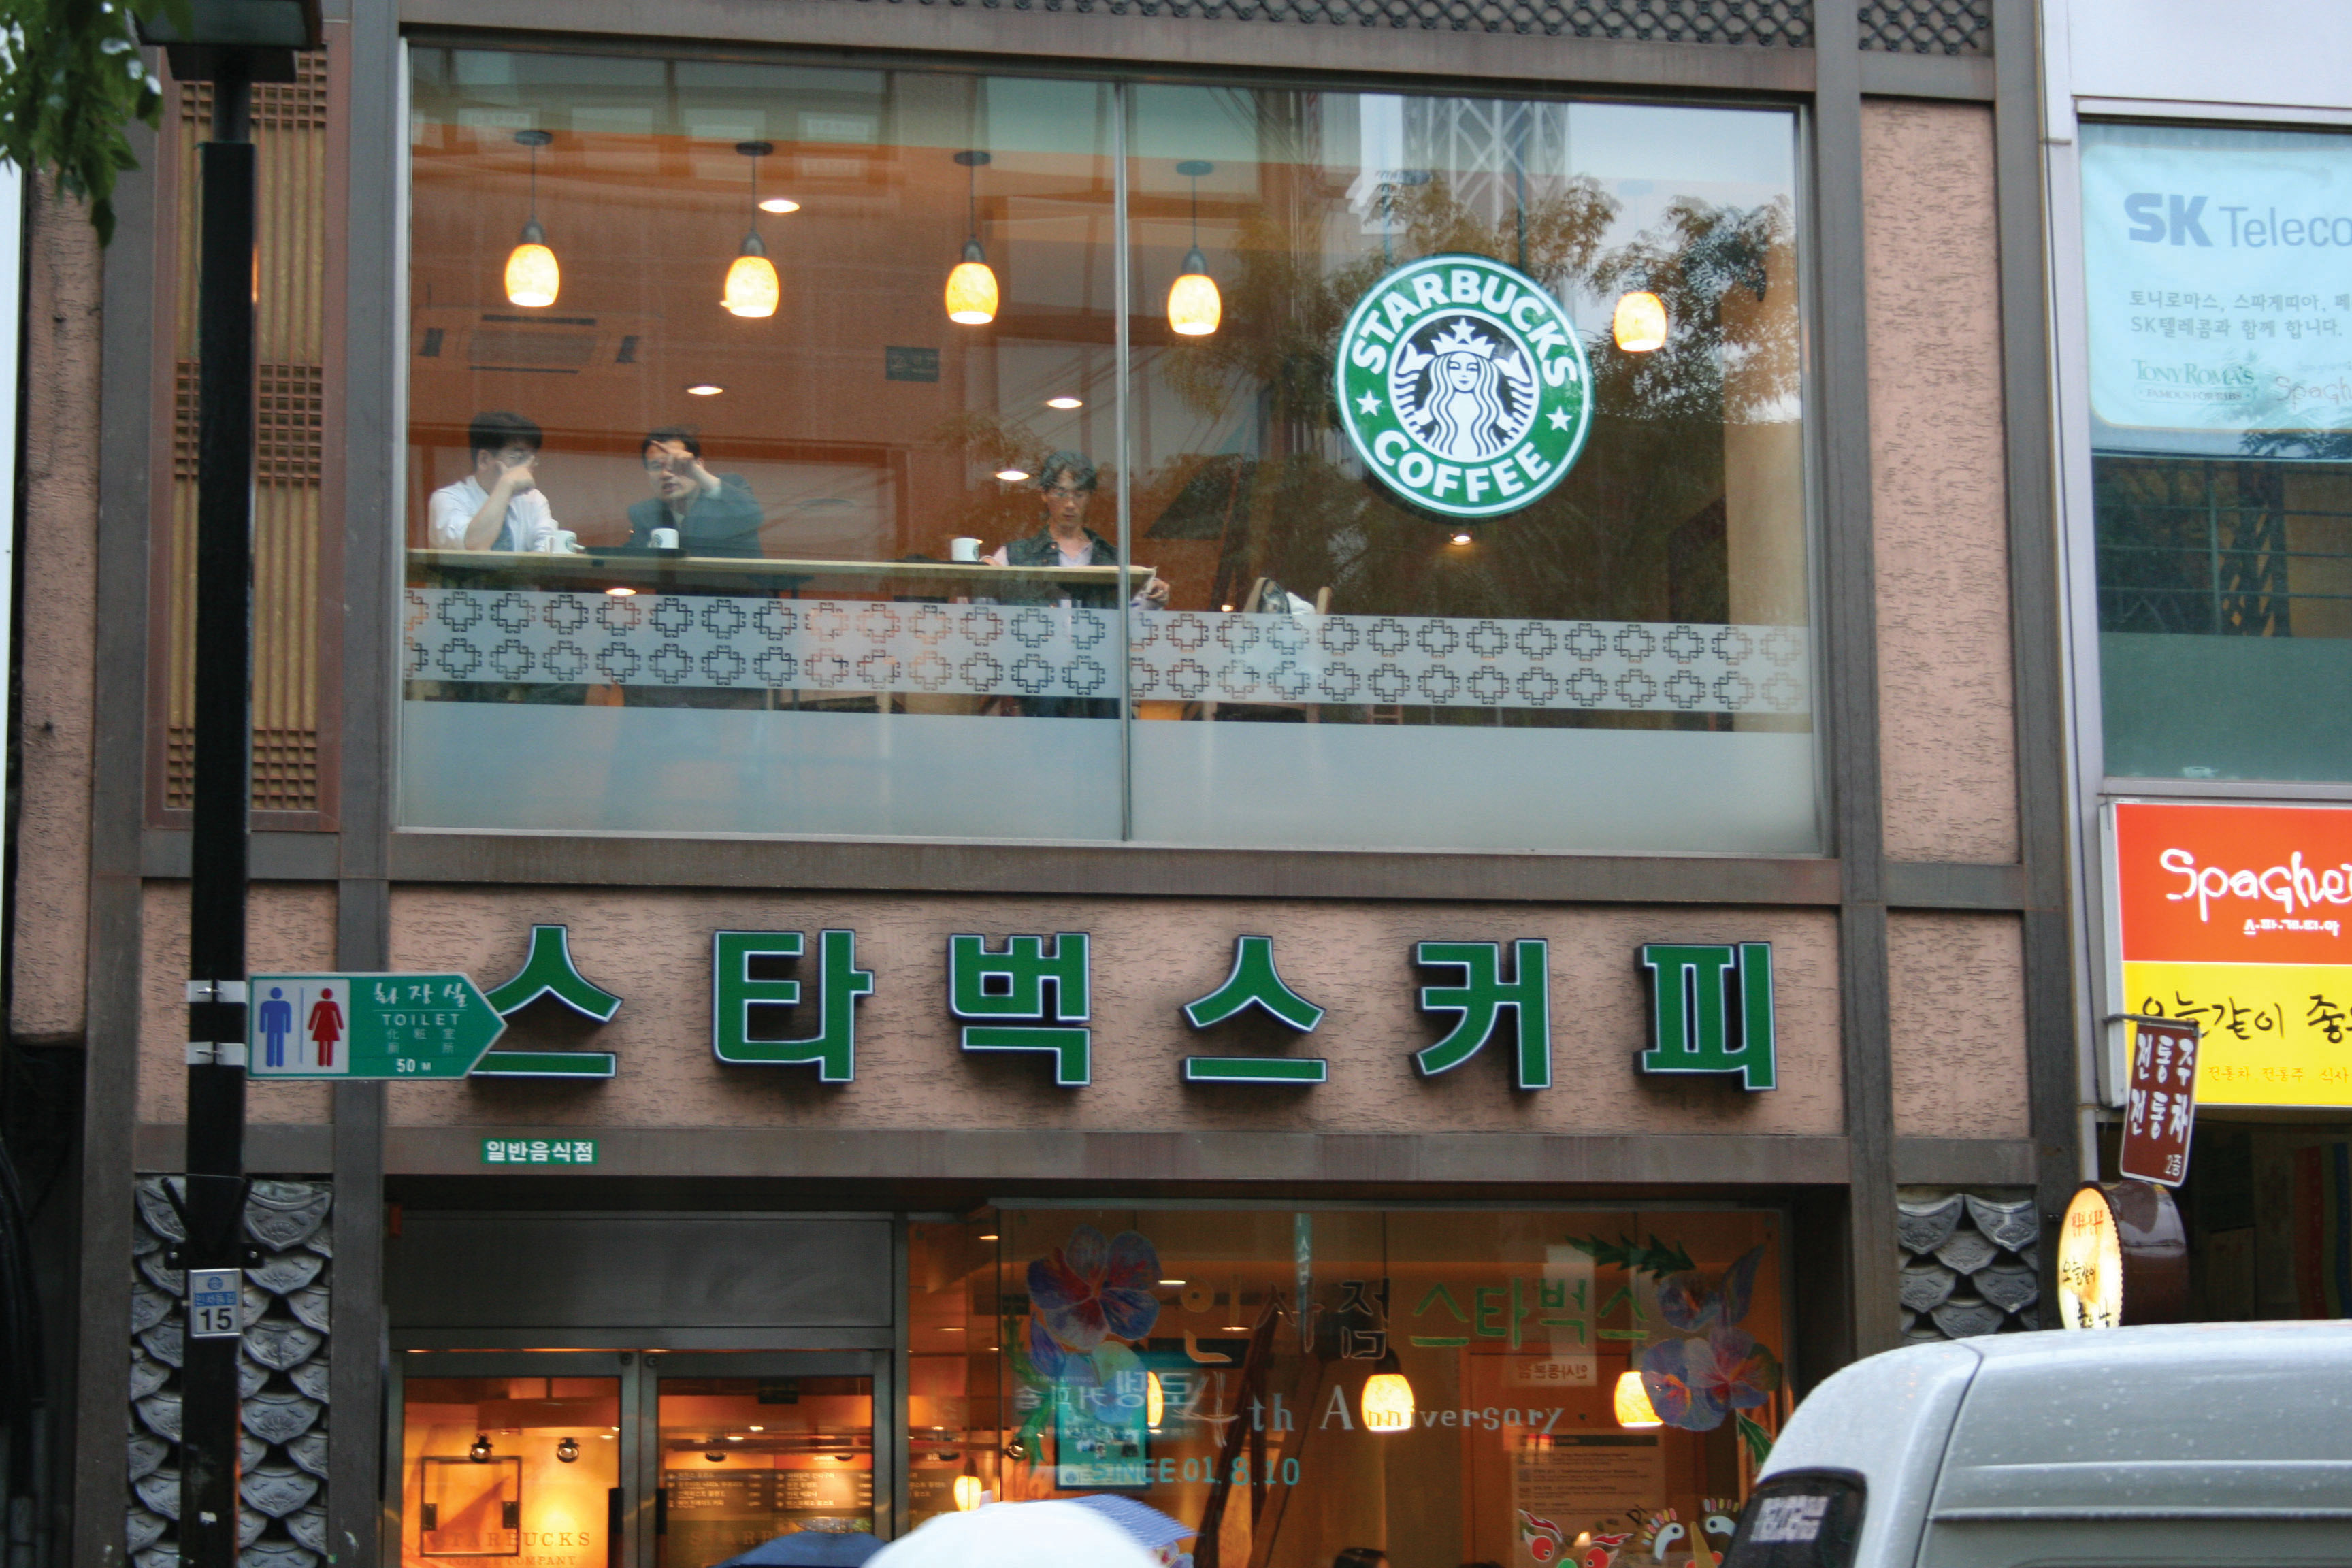 starbucks international expansion What do you think the effects of government policy, social diversity, and business ethics will be in relation to starbucks intended expansion.